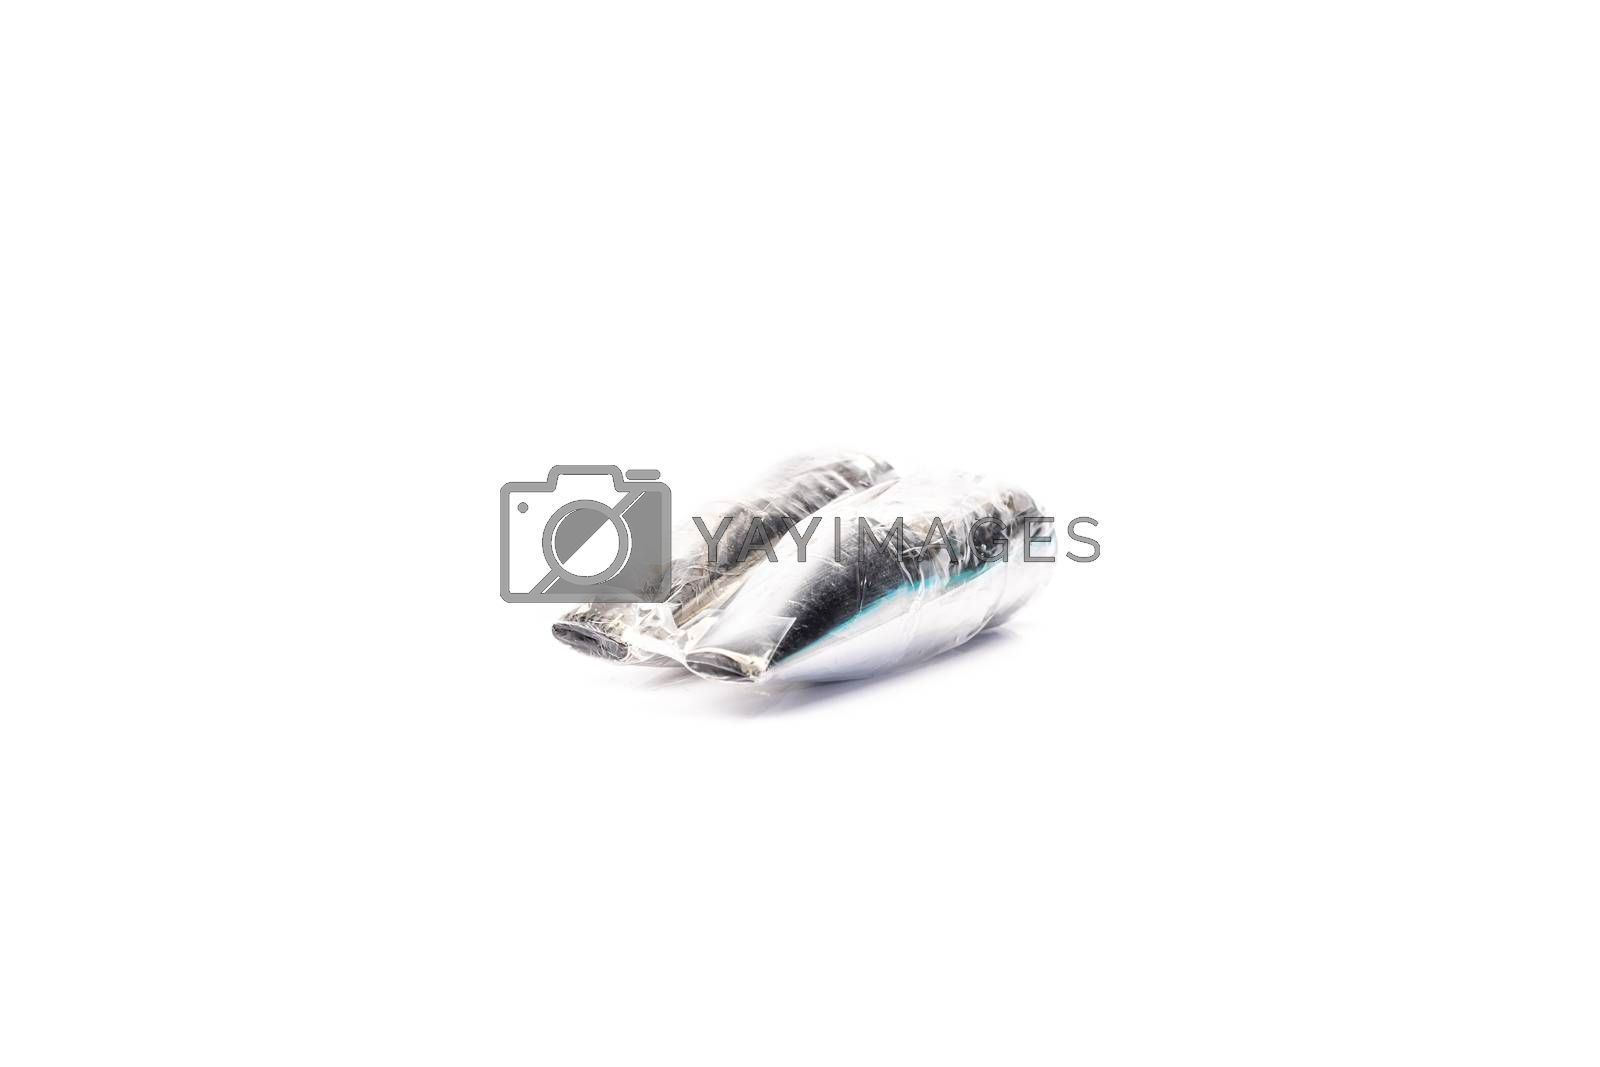 kitchen socket on white background in studio - Cake Decorating - Stainless steel